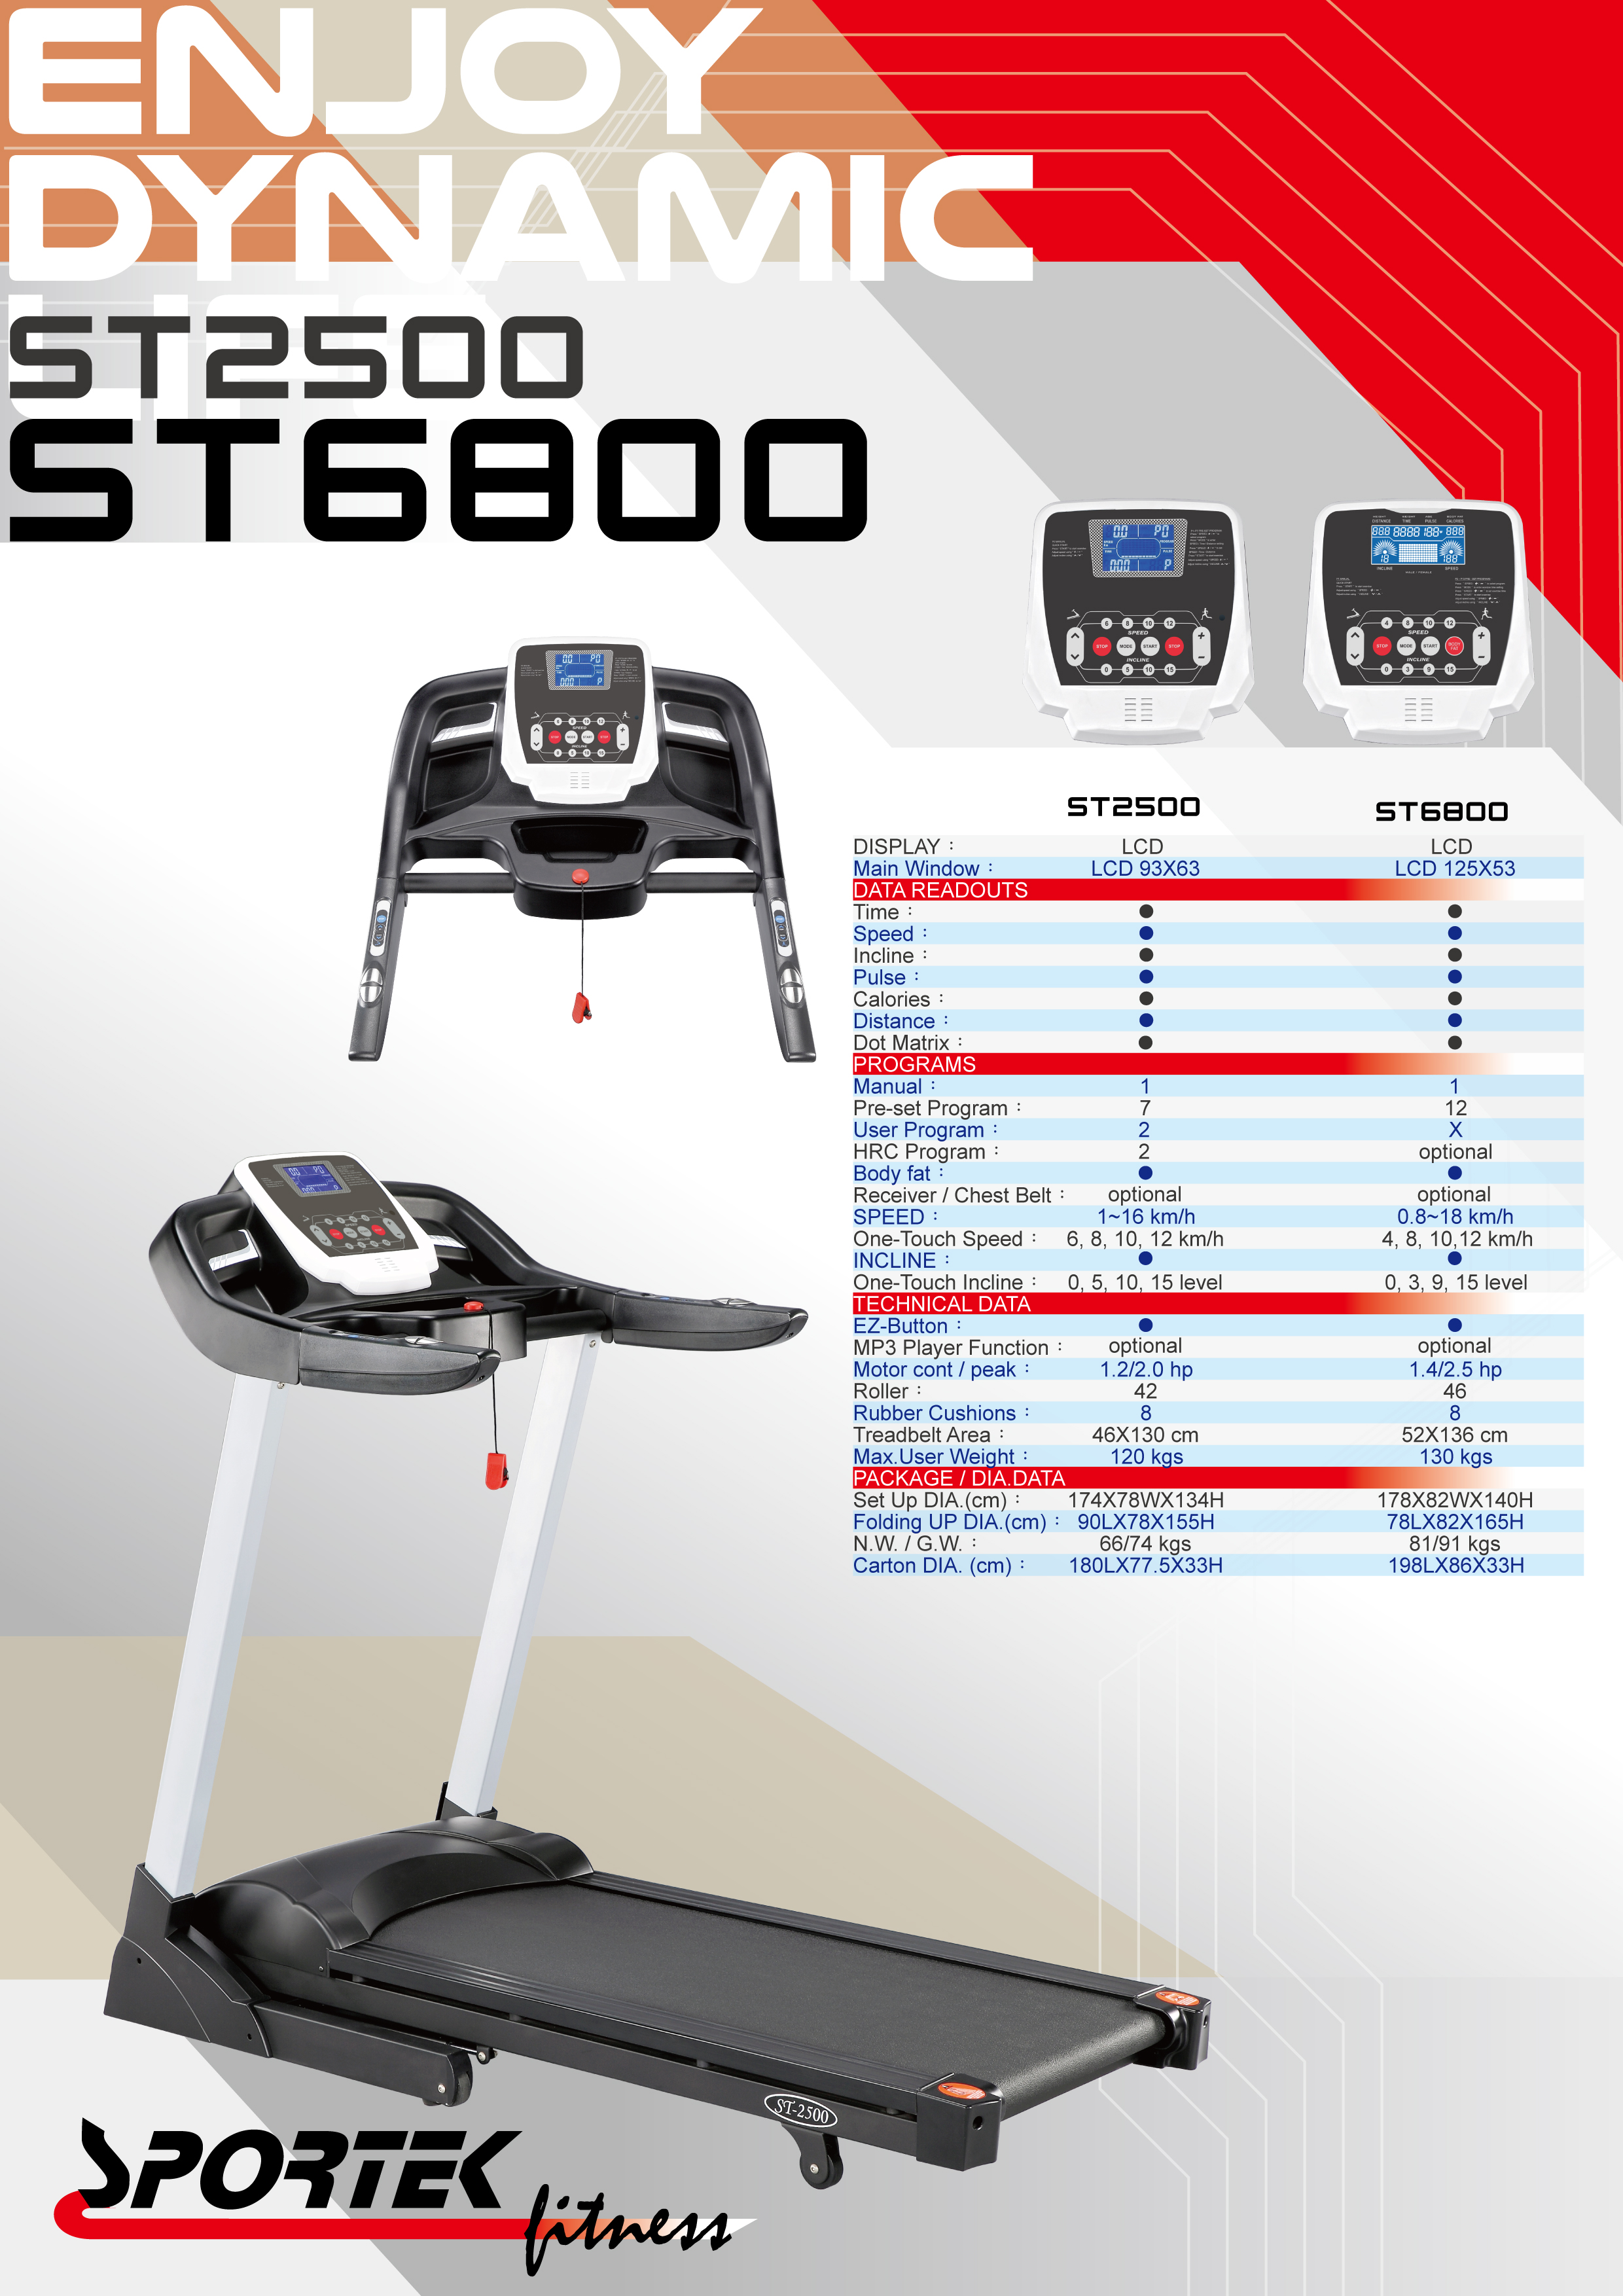 New Smart Treadmills With Bluetooth Where can i find a sportek ee220 elliptical strap? new smart treadmills with bluetooth